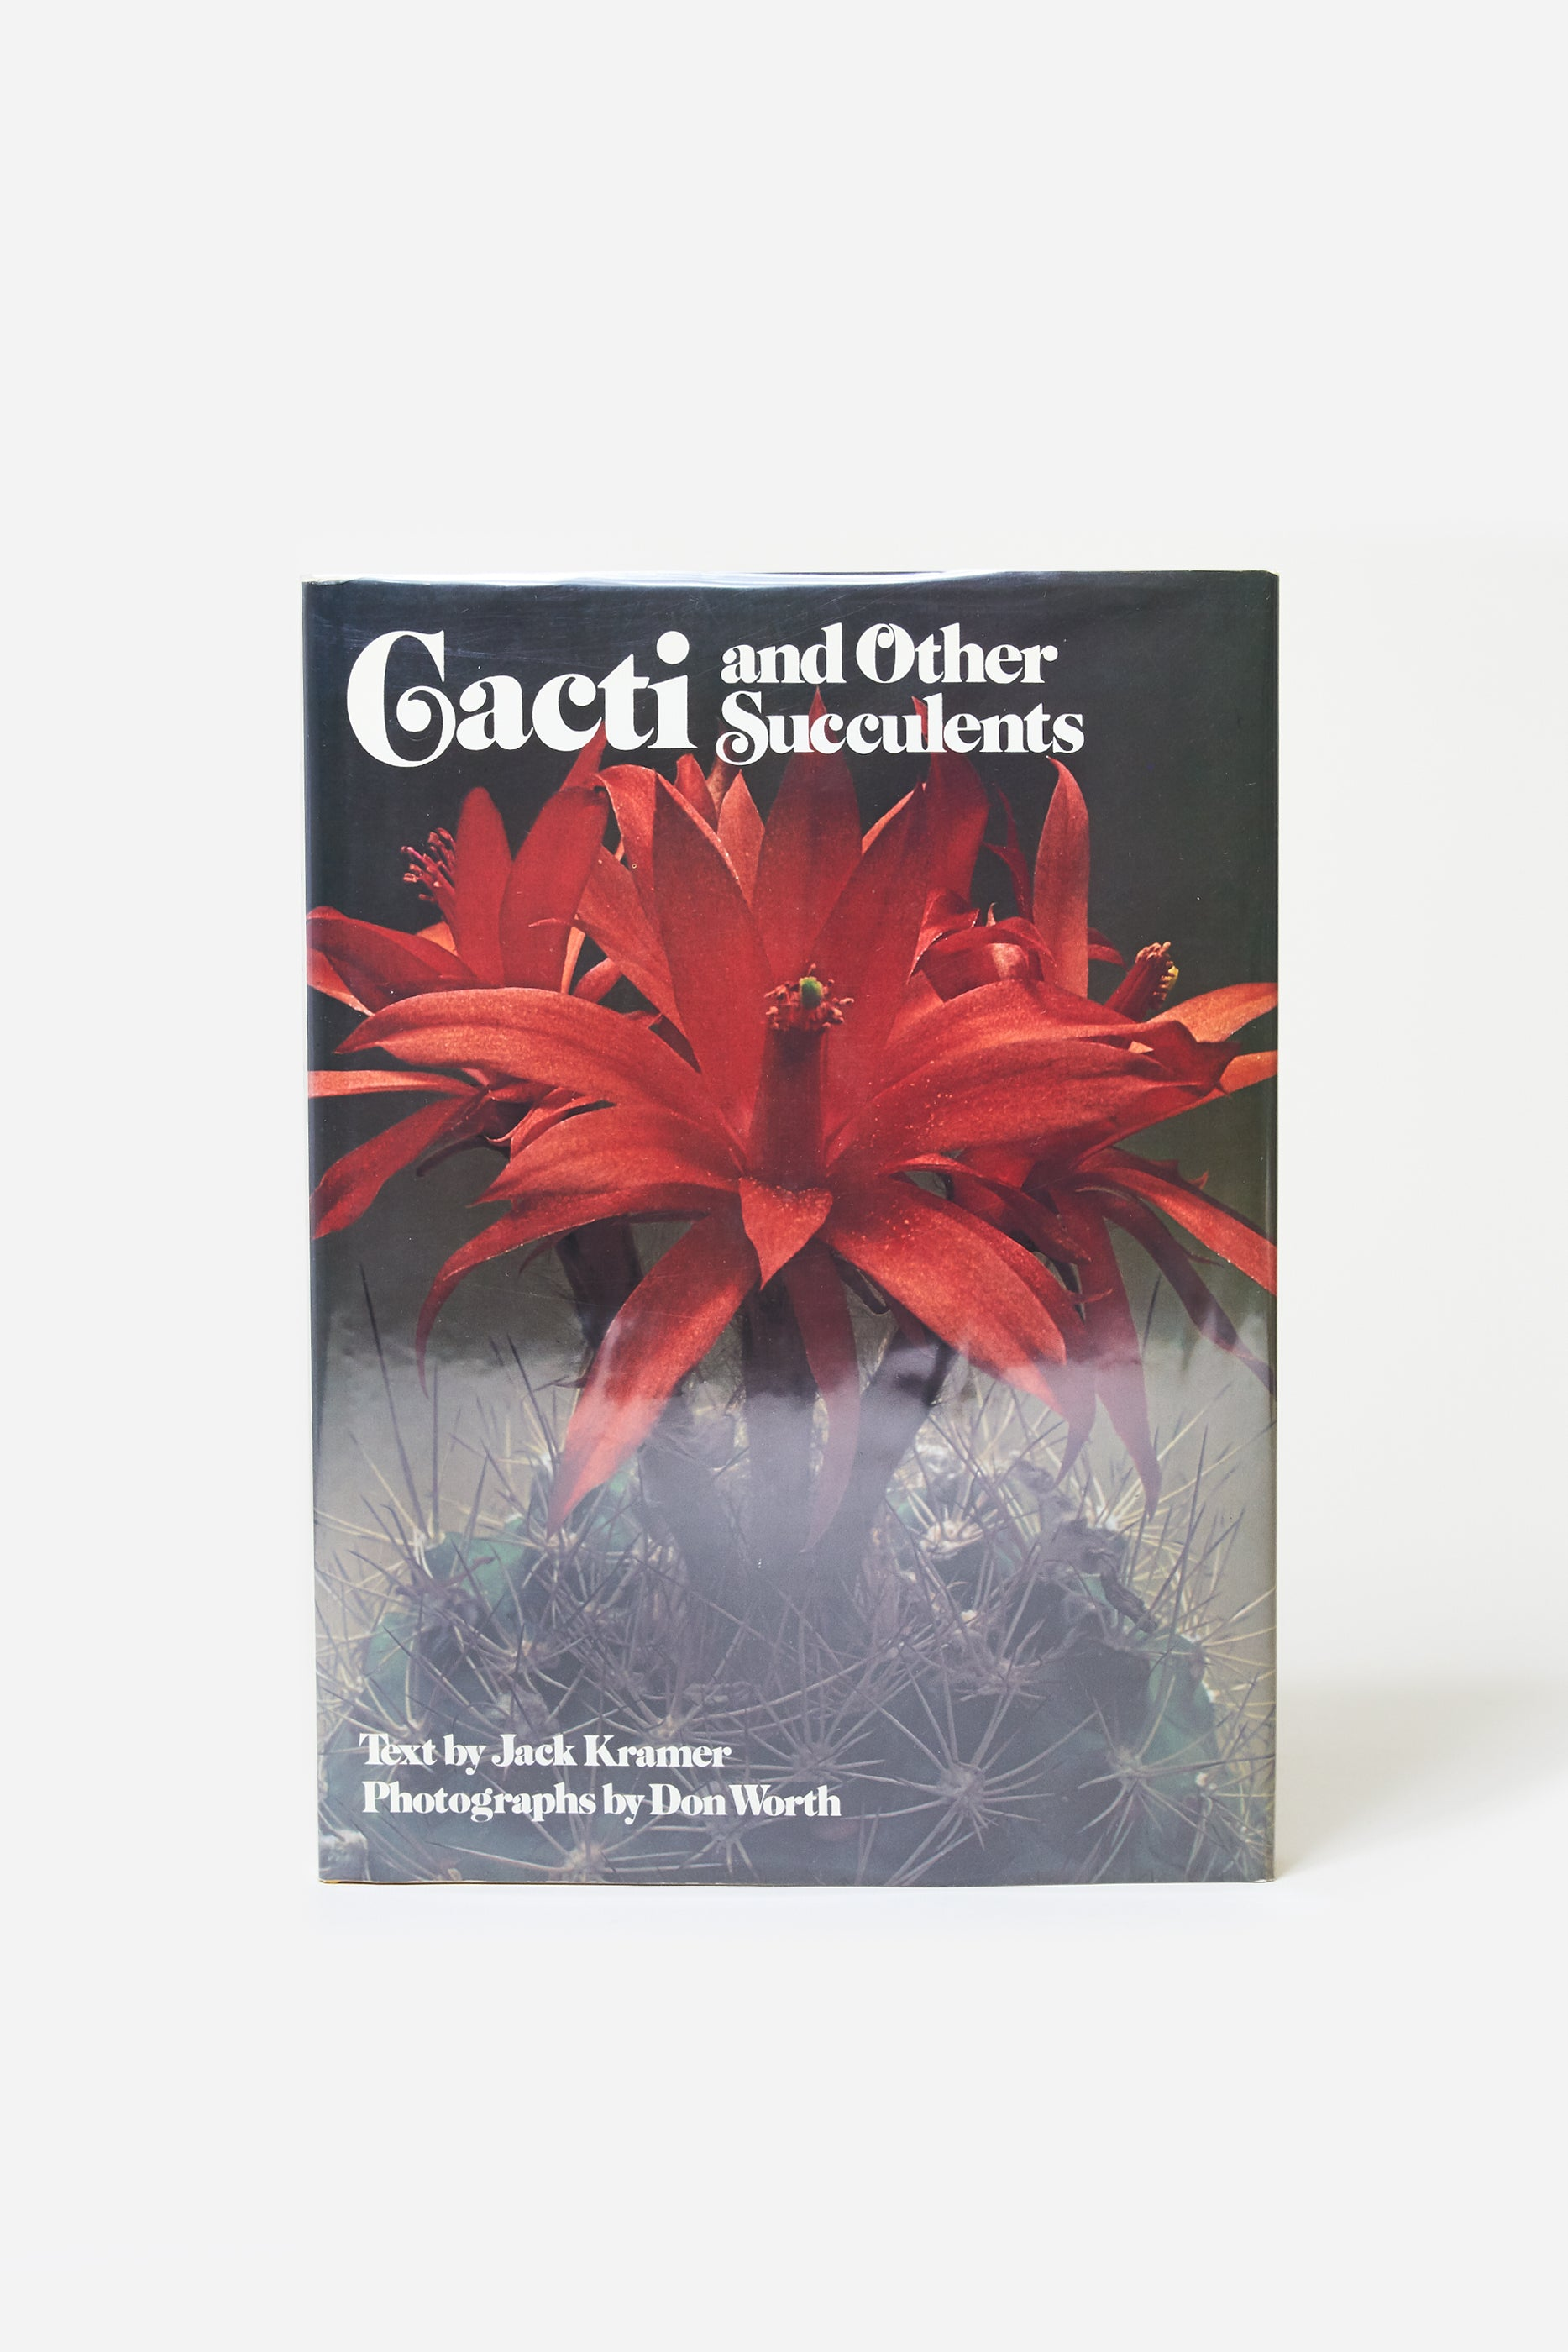 Cacti and Other Succulents / Jack Kramer & Don Worth / 1977 1st sc